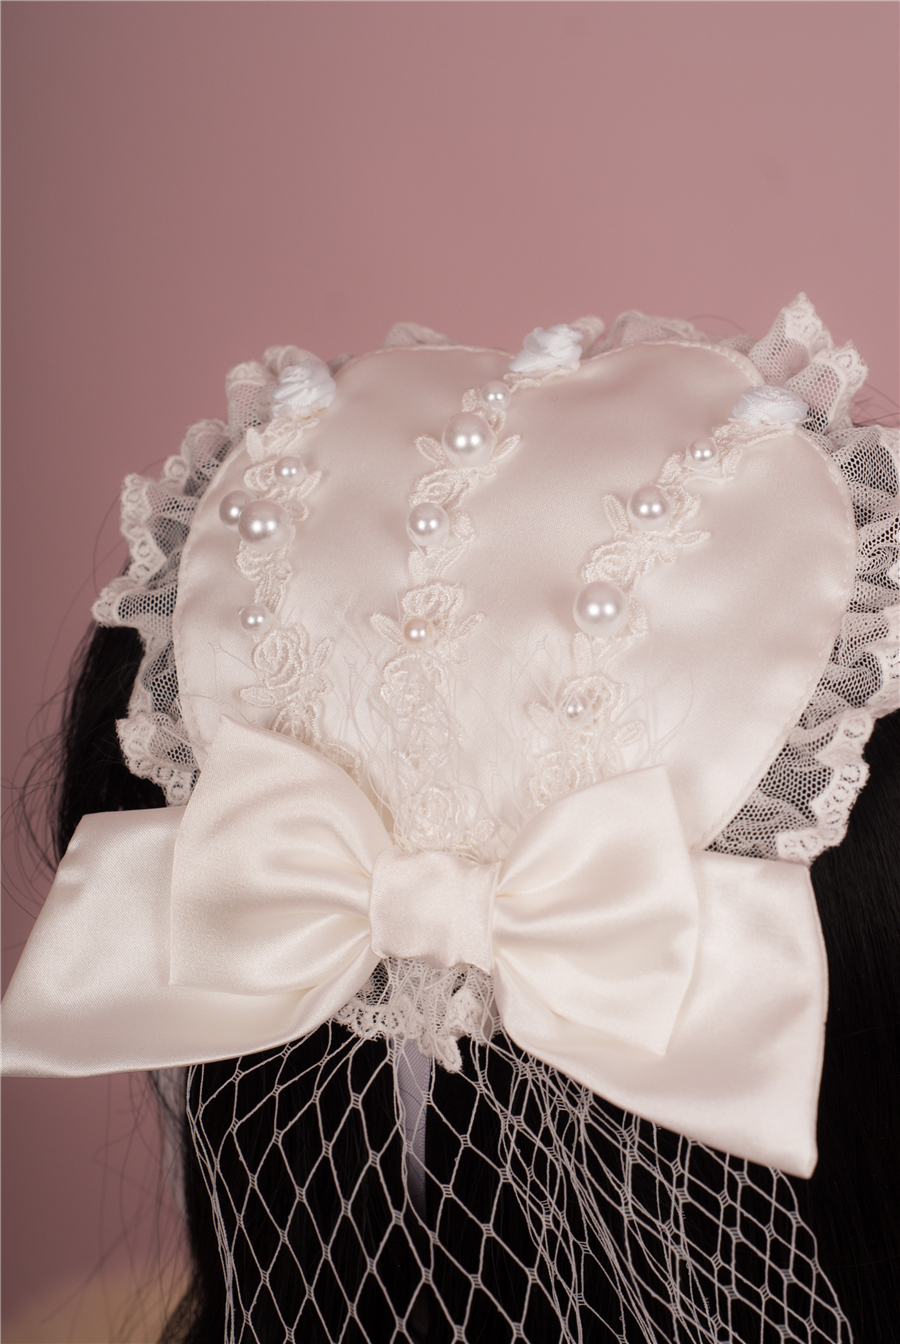 Babyponytail_Stock Photo_Present Angel_Accessories_13.jpg